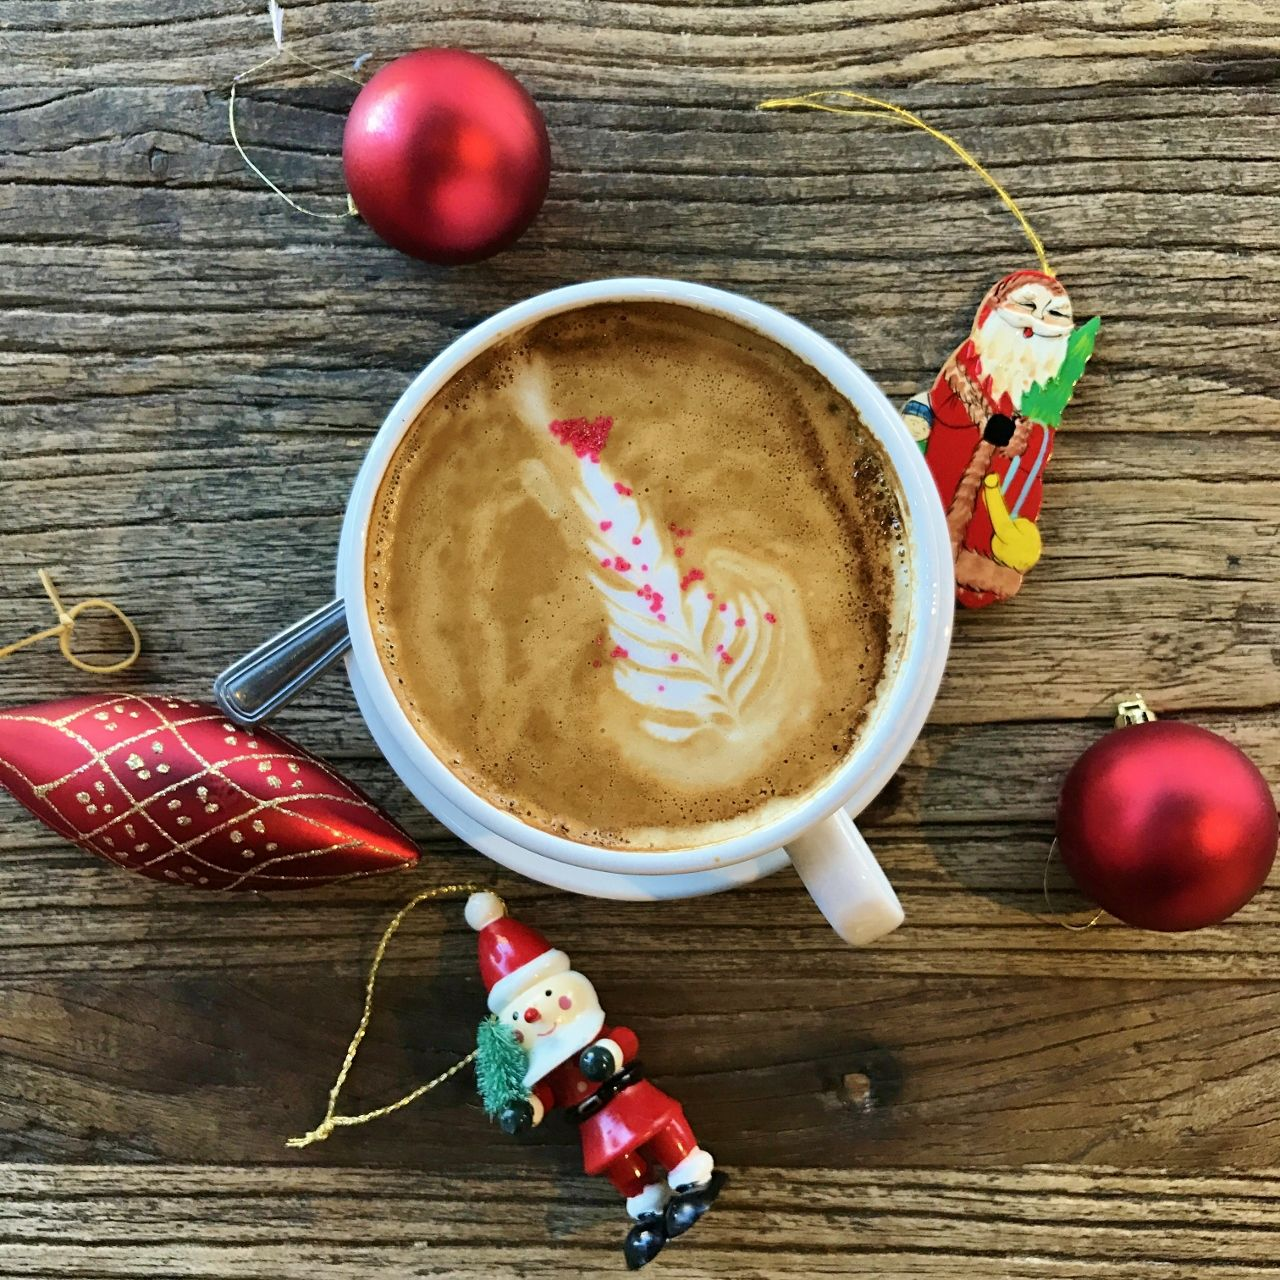 Feelingfestive with a merrycoffee as we